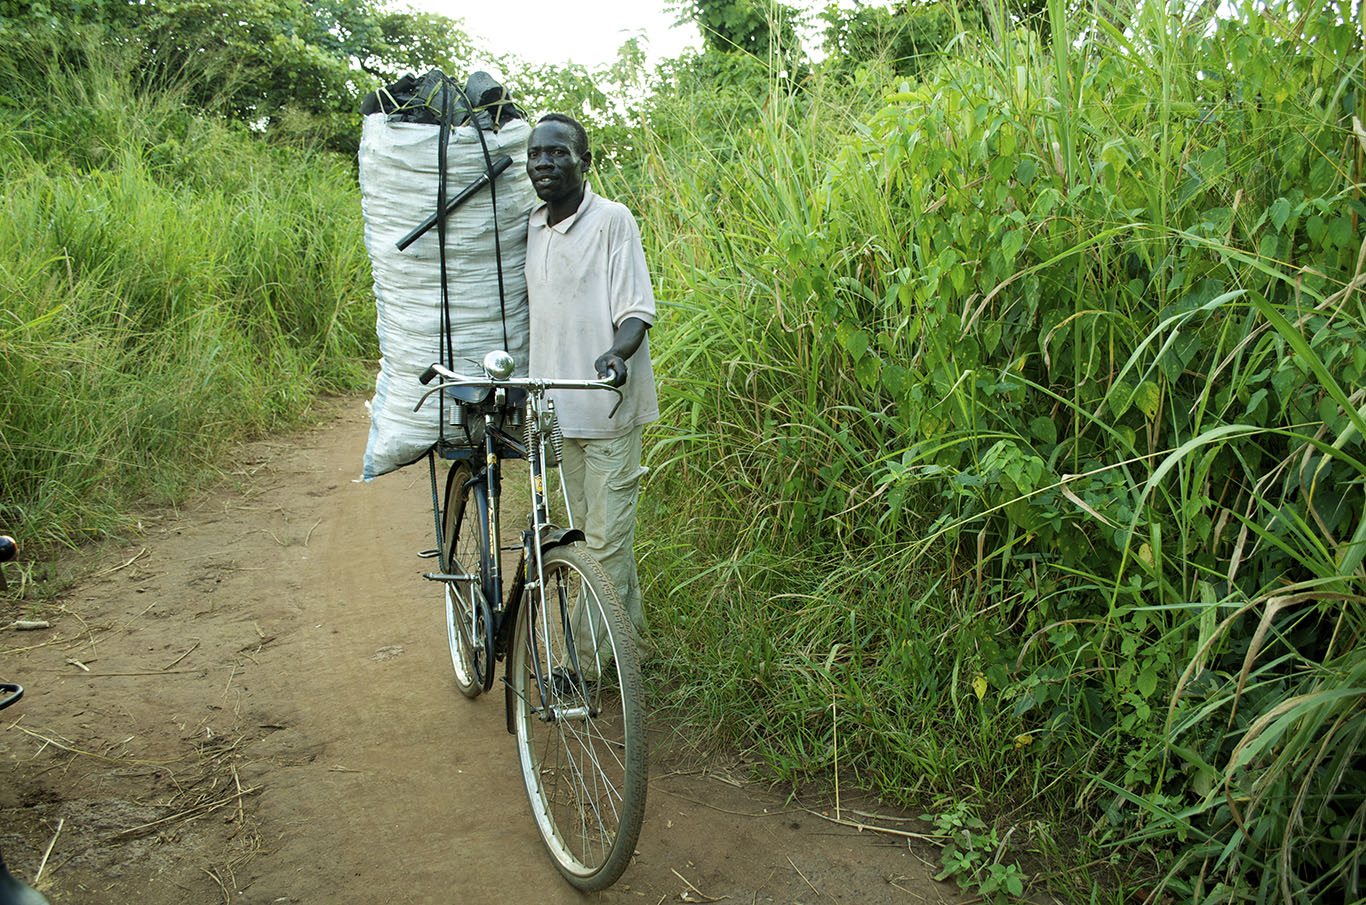 Man carrying cargo on a bicycle